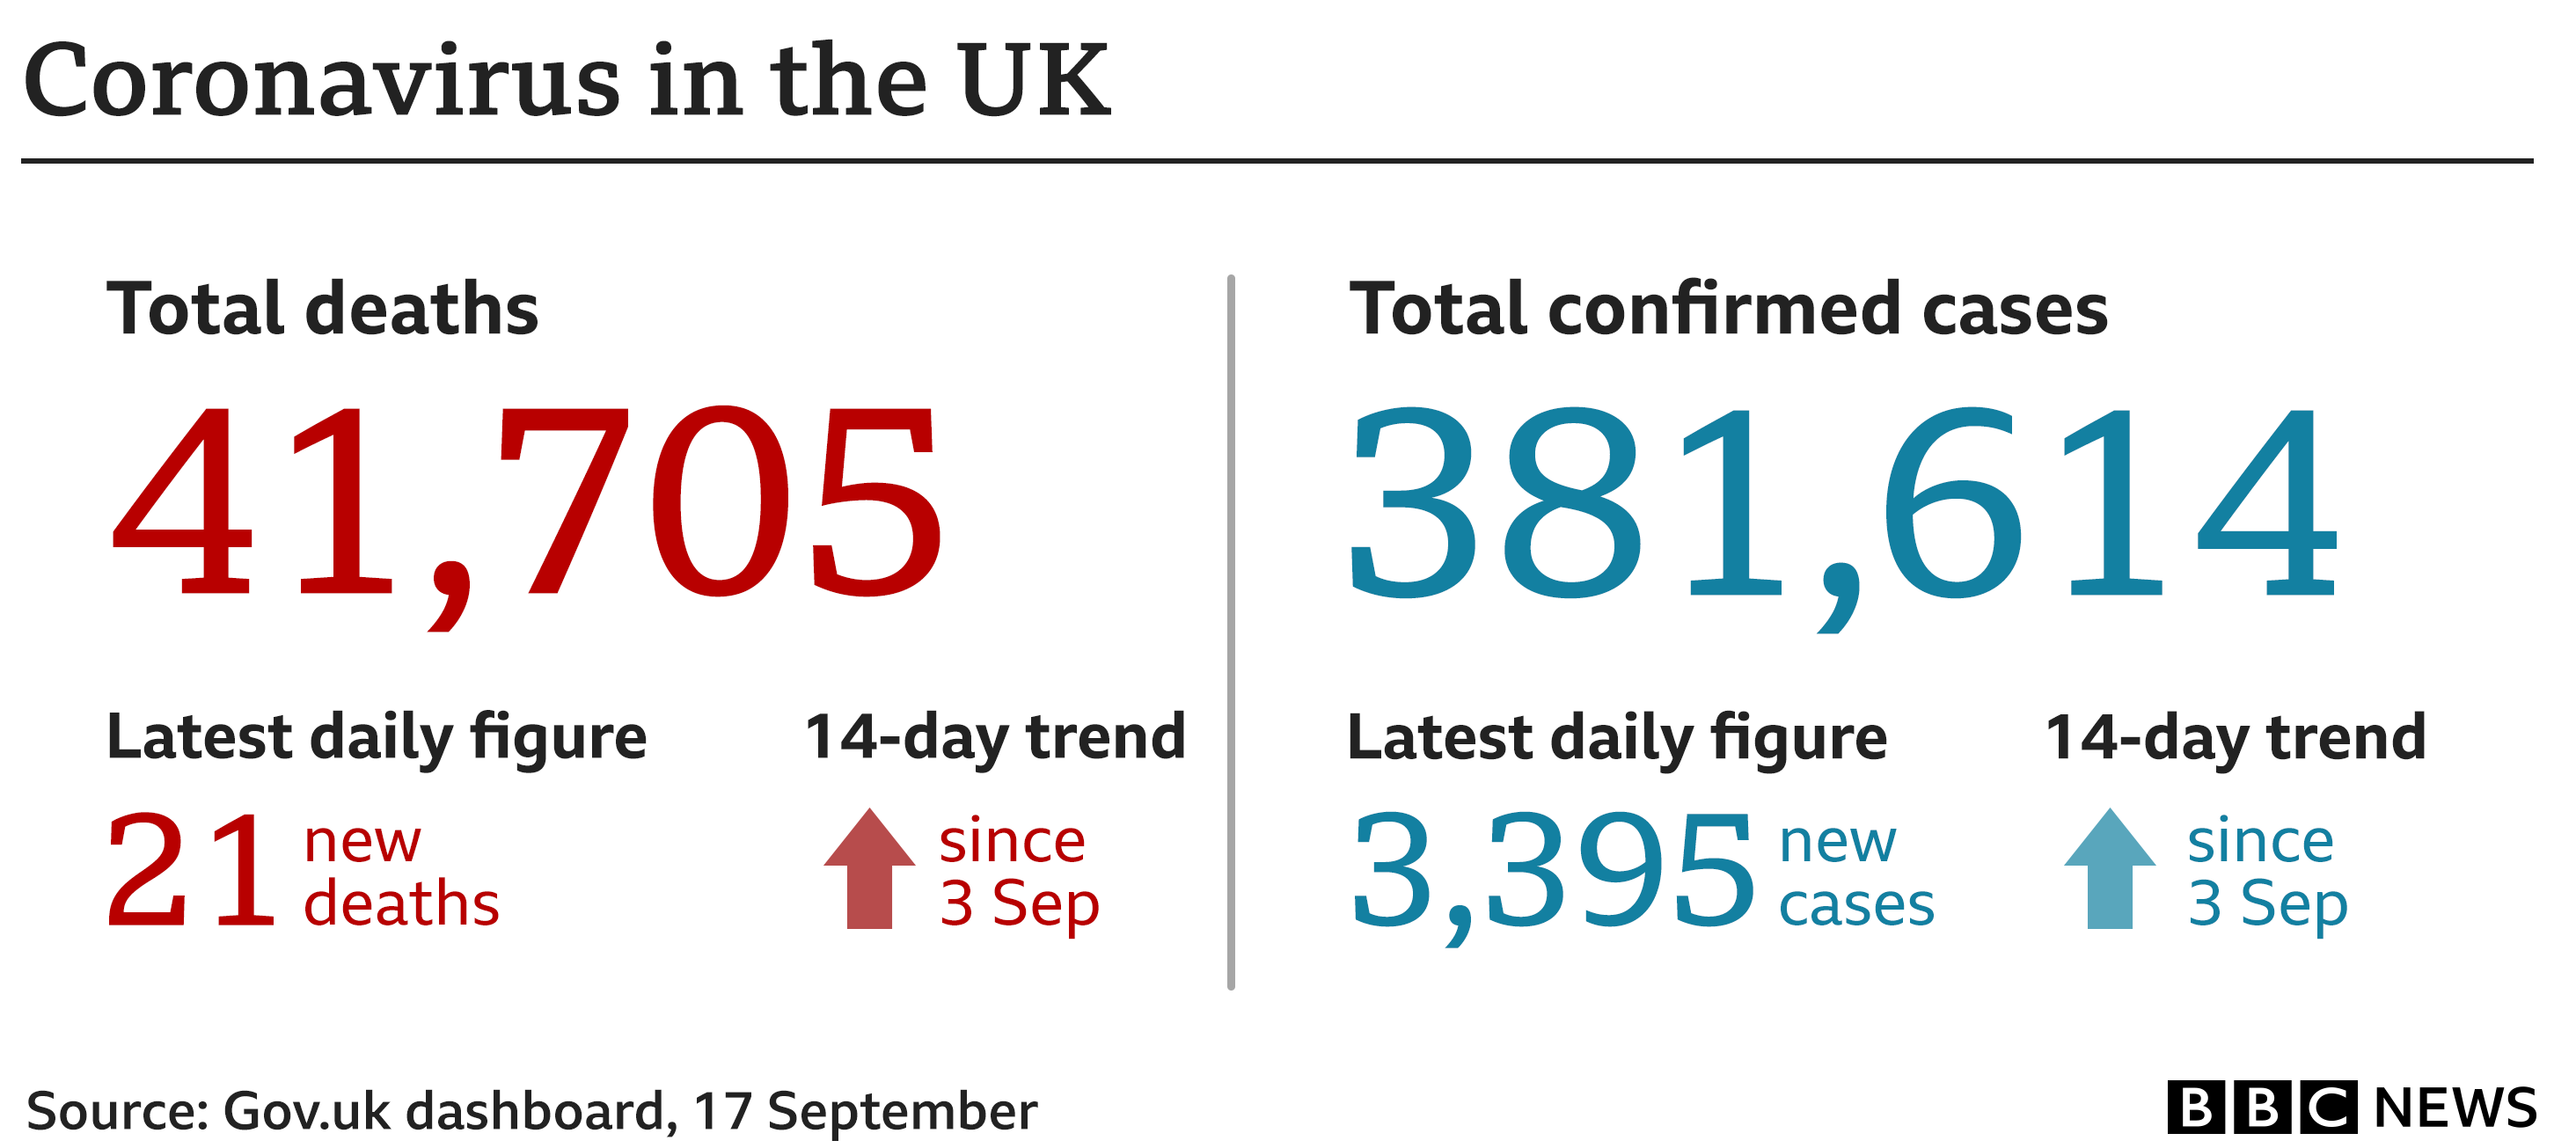 Graphic showing UK coronavirus figures, as at 17 September: 41,705 deaths - up 21 in 24 hours; 381,614 cases - up 3,395 in 24 hours. Source: UK government dashboard